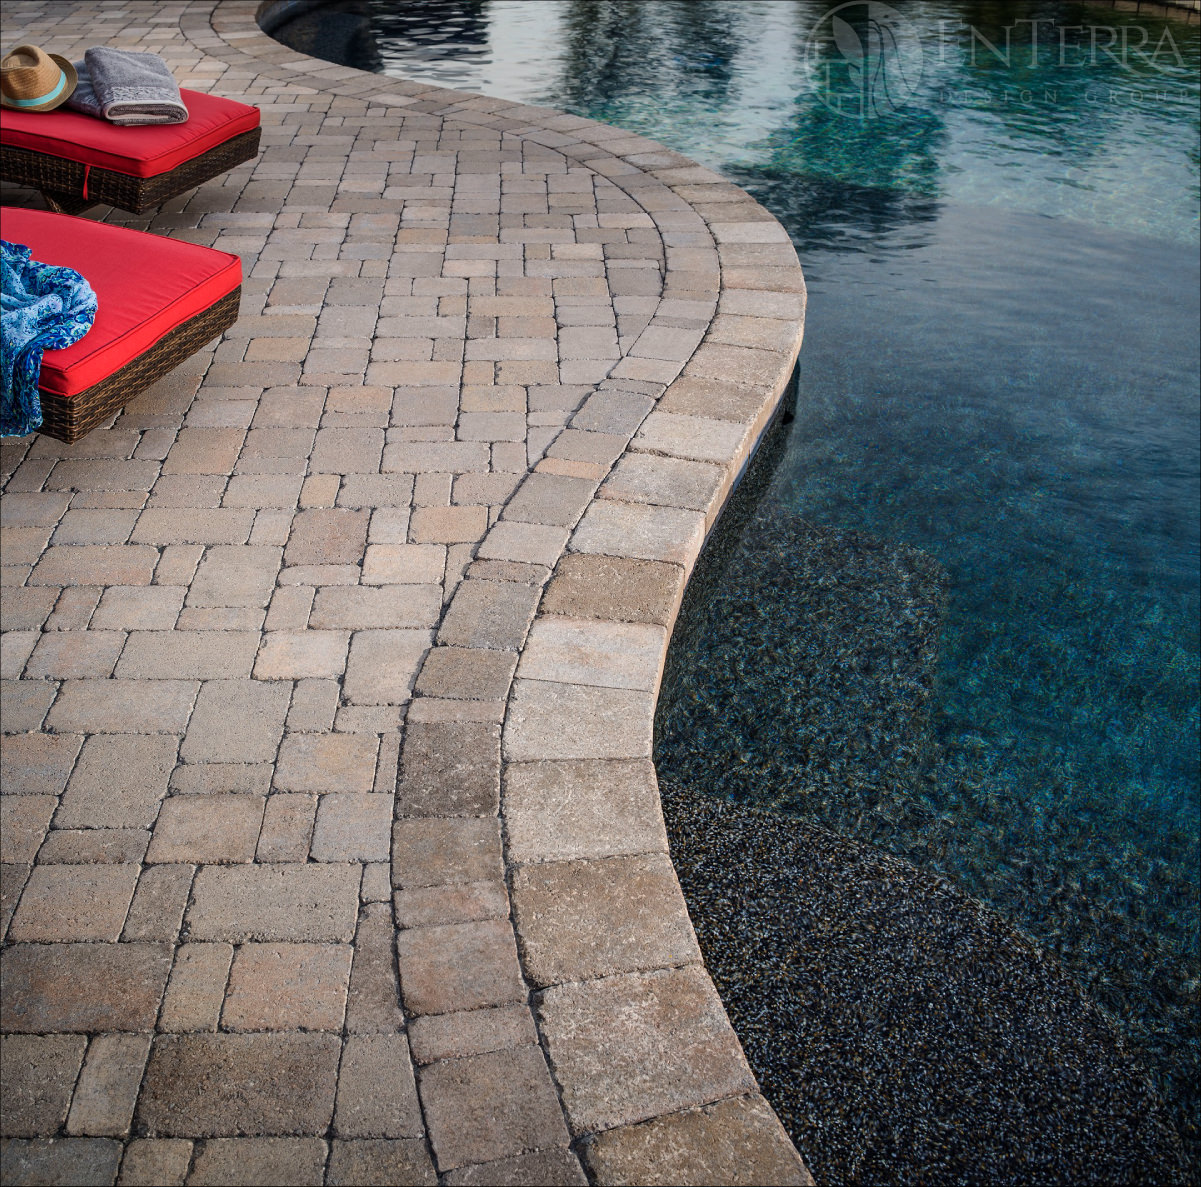 The tumbled paver pool deck & coping nicely compliment the darker Pebble Tec pool finish.